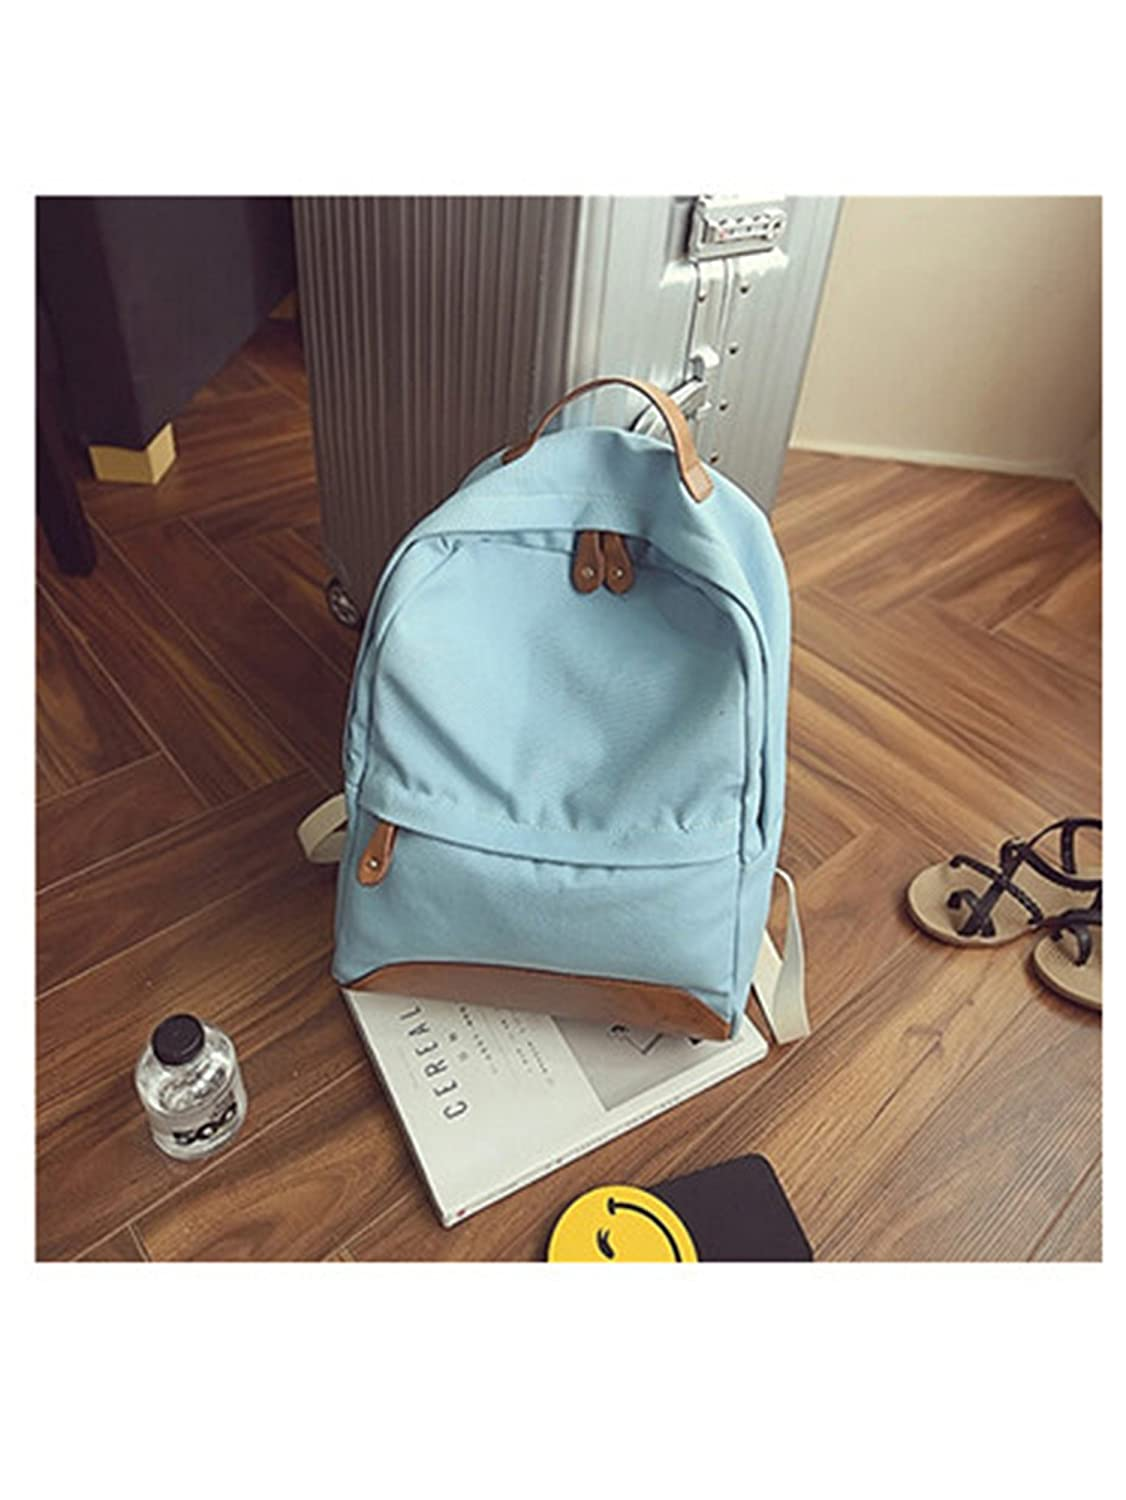 Amazon.com: Tyler Morrison Canvas Women Backpack Korean Fresh Stitching School Bagpack New New Mochilas Feminina Candy Color Girls Backpacks Black: Shoes